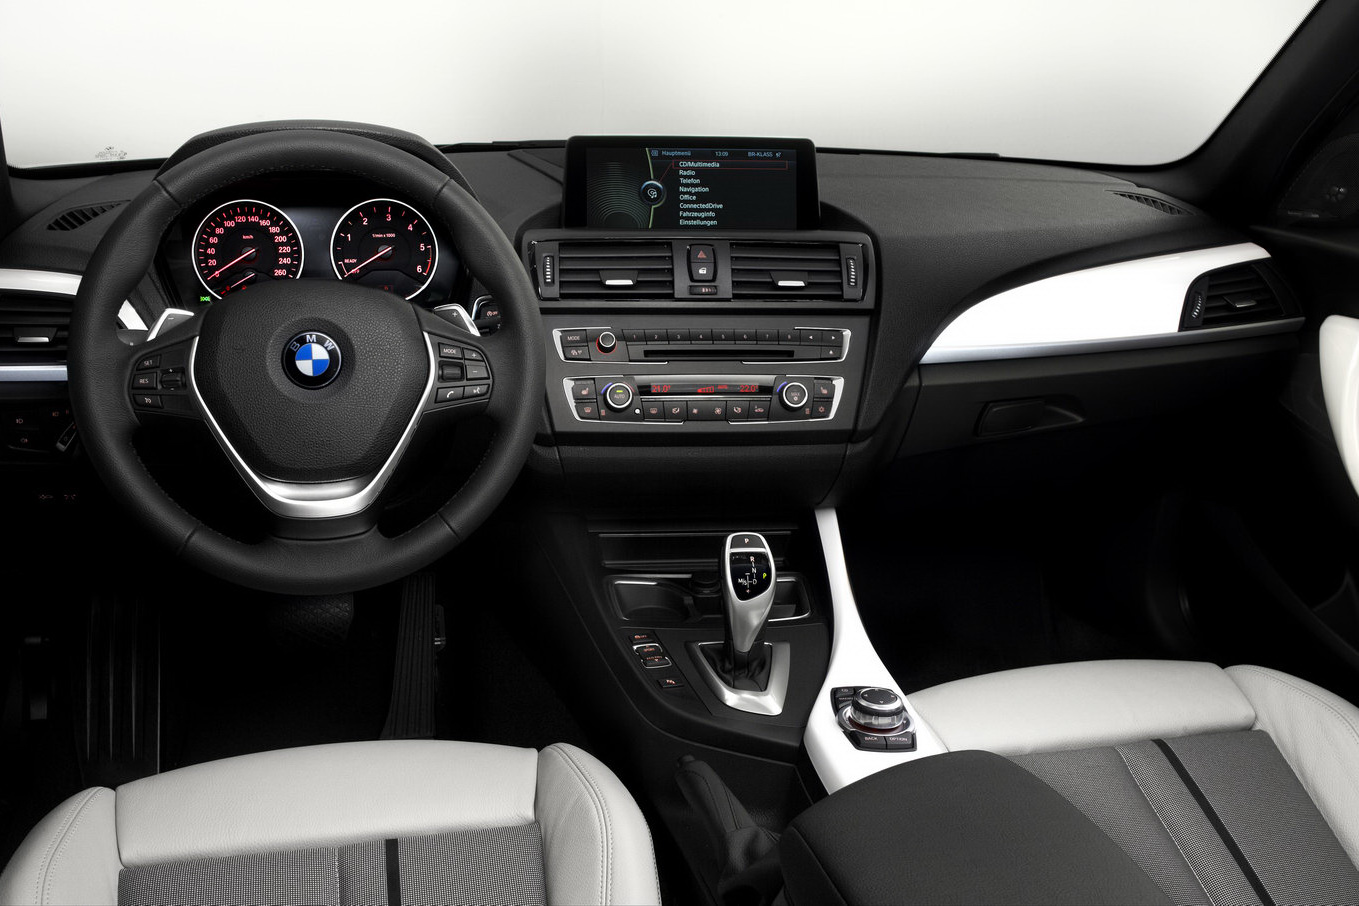 2012 Bmw 1 Series F20 Interior 11 Forcegt Com